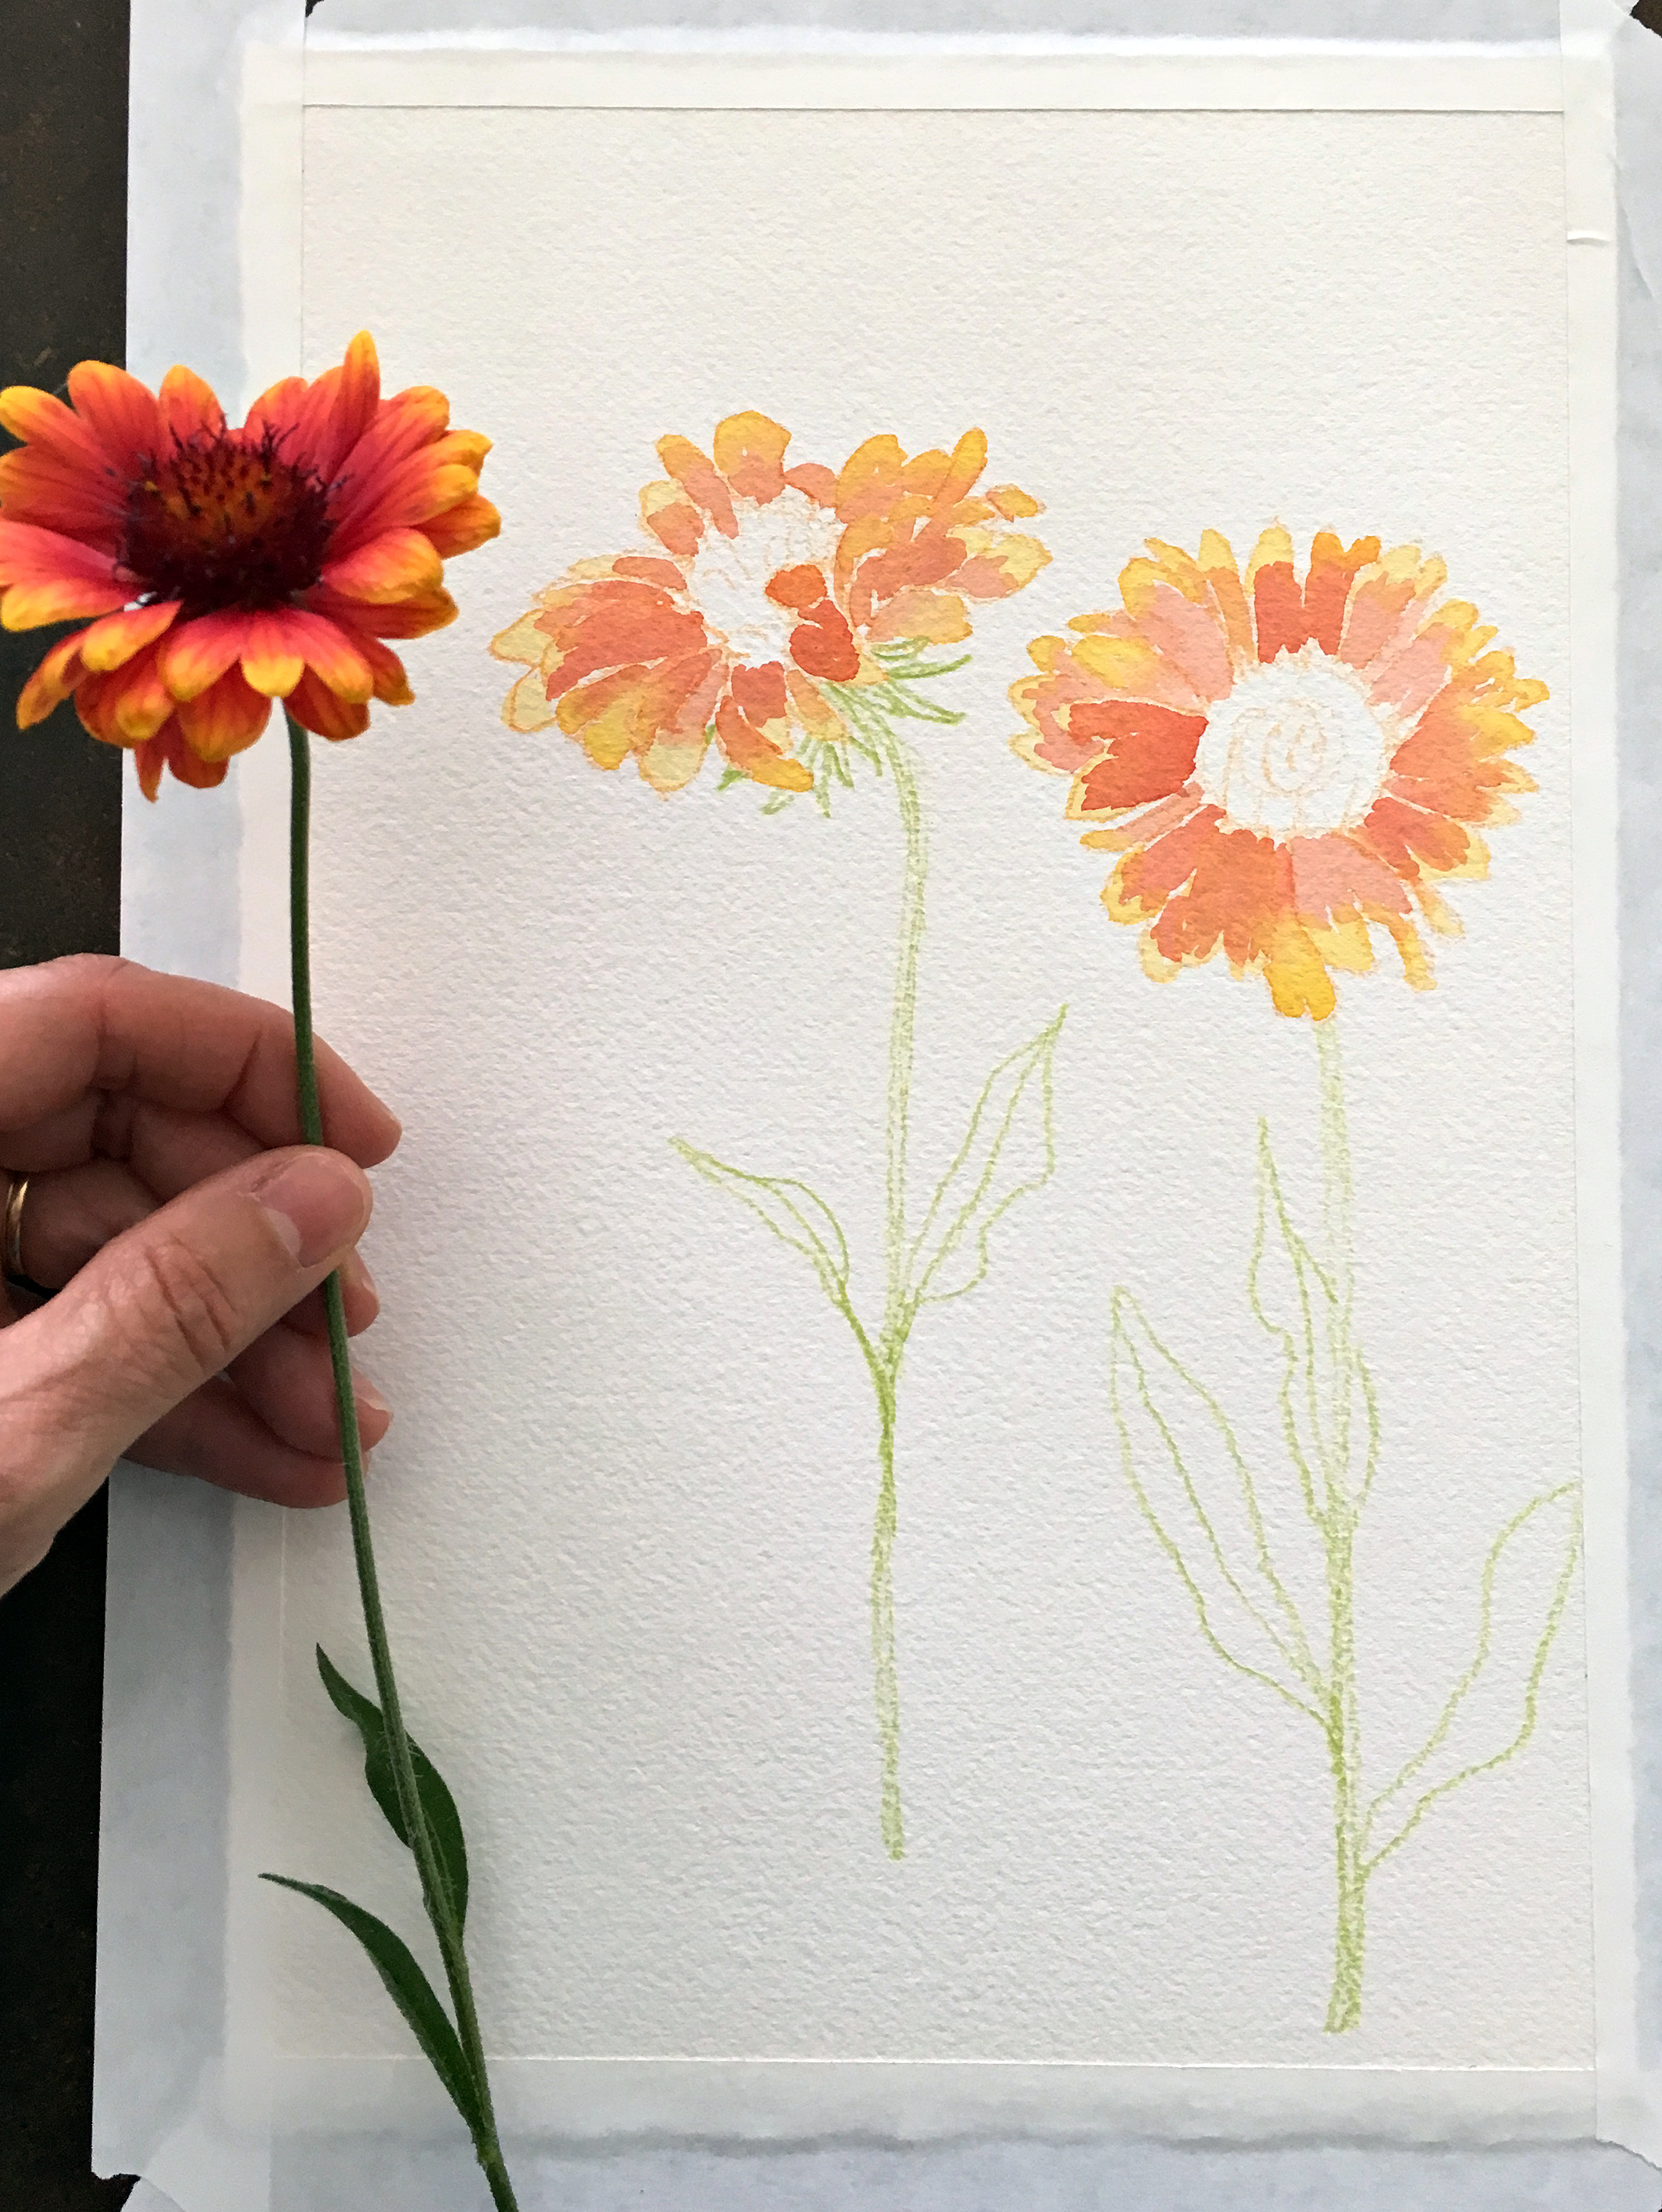 Blanket Flower Process by Sharon Holland